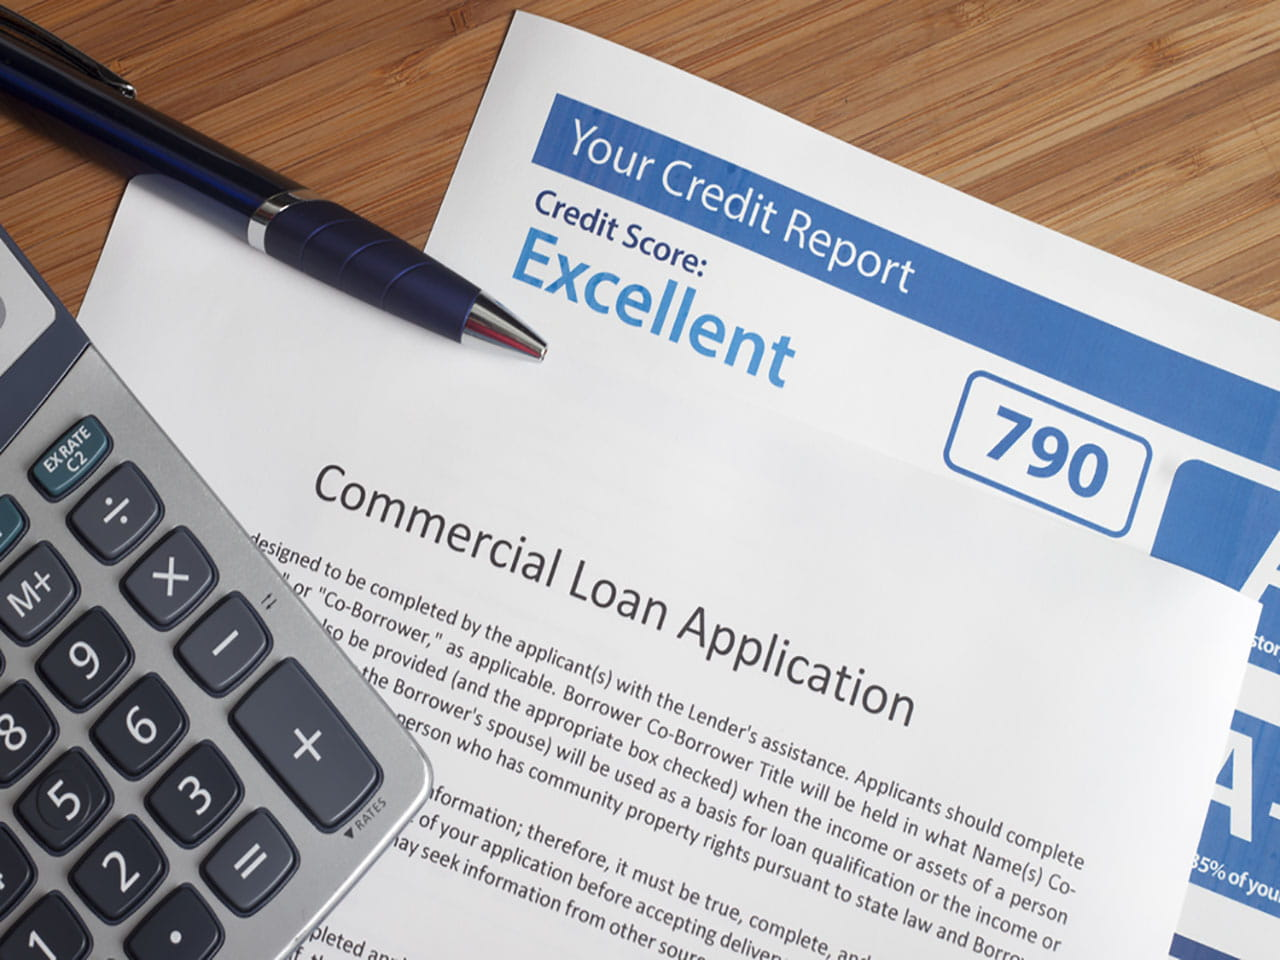 Loan application and a credit report with an excellent score